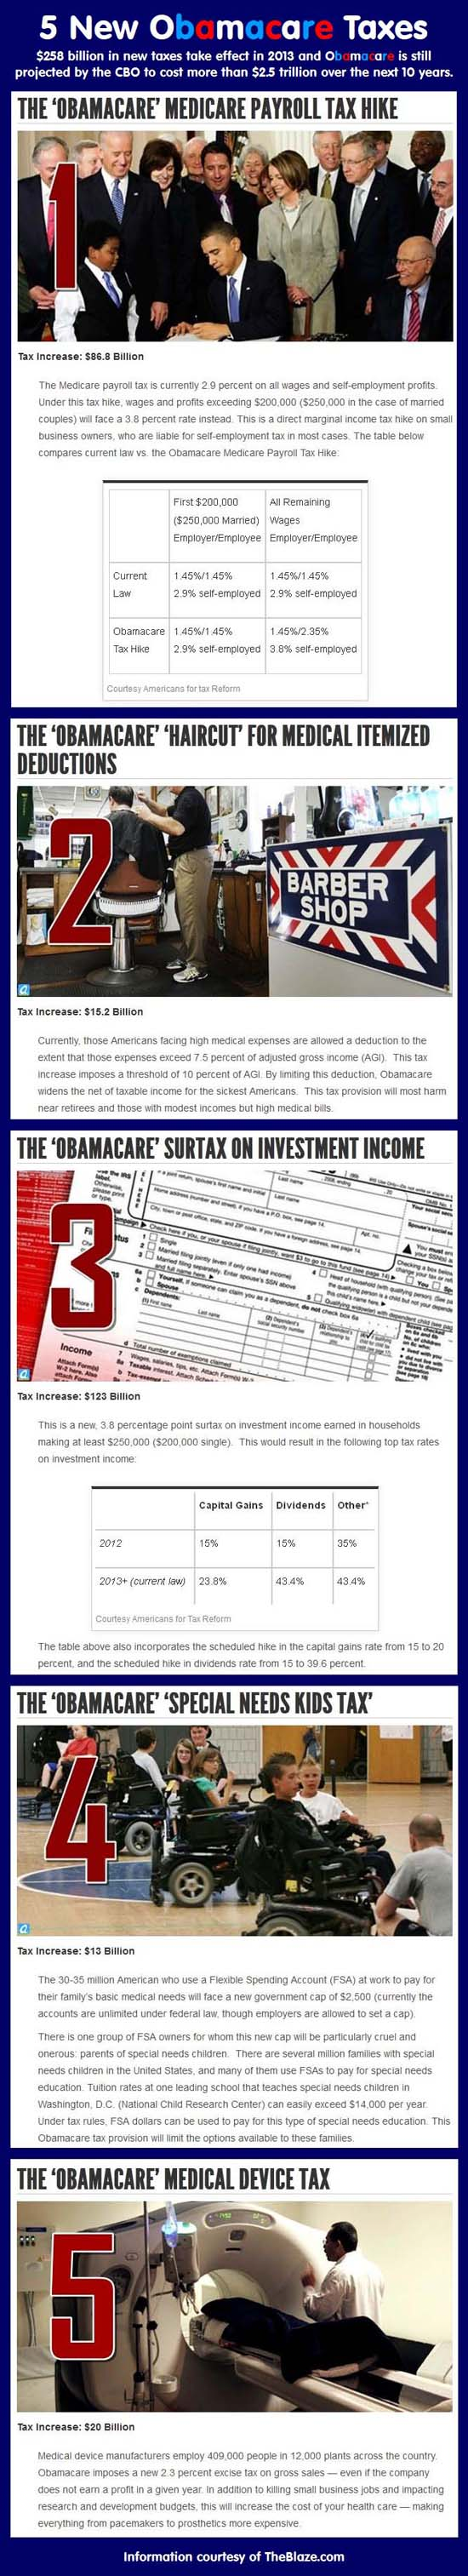 Obamacare Taxes